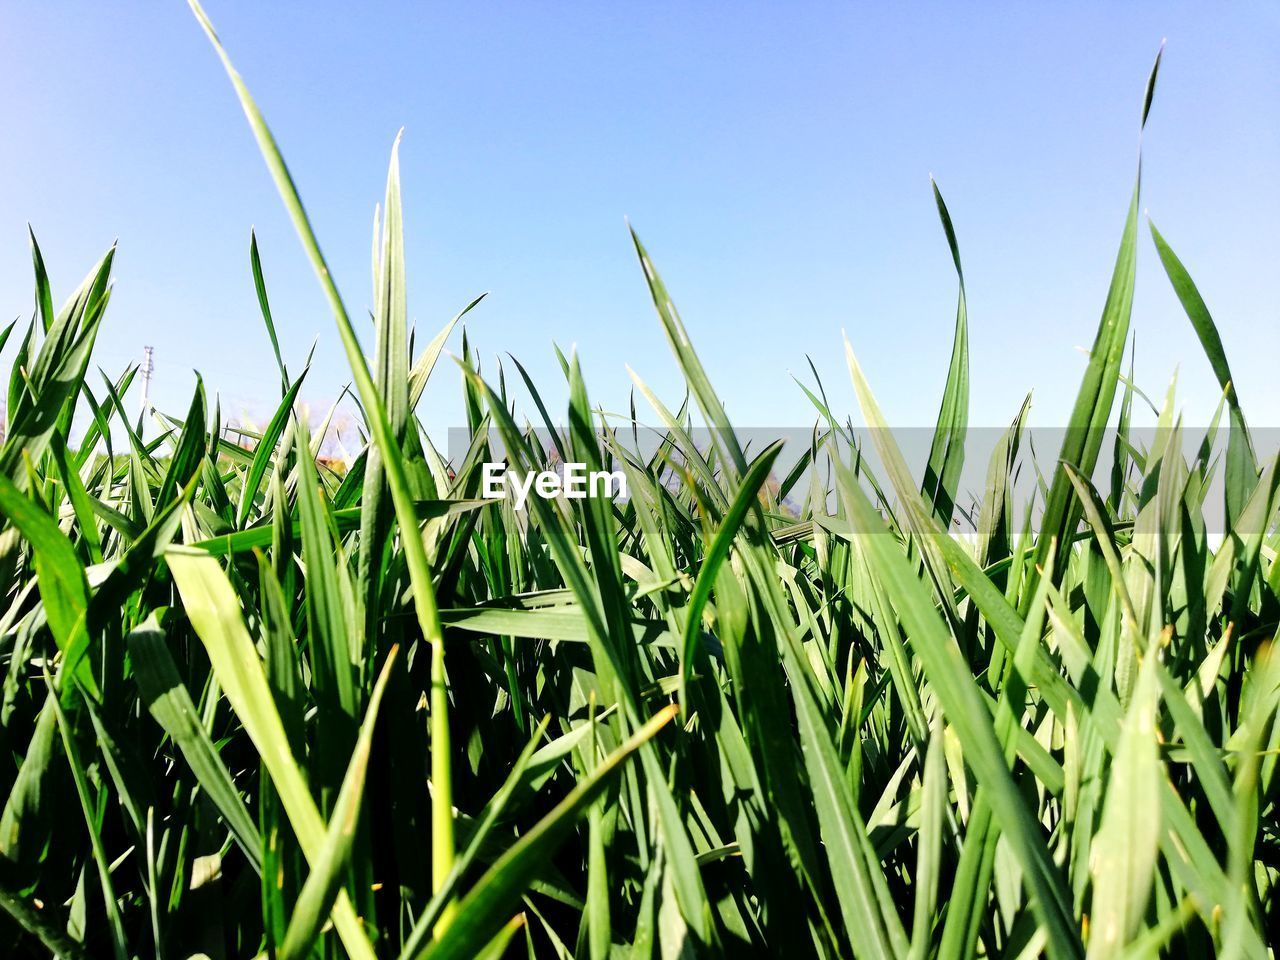 growth, plant, green color, field, land, sky, nature, crop, agriculture, tranquility, beauty in nature, landscape, no people, day, rural scene, farm, grass, cereal plant, sunlight, close-up, outdoors, blade of grass, plantation